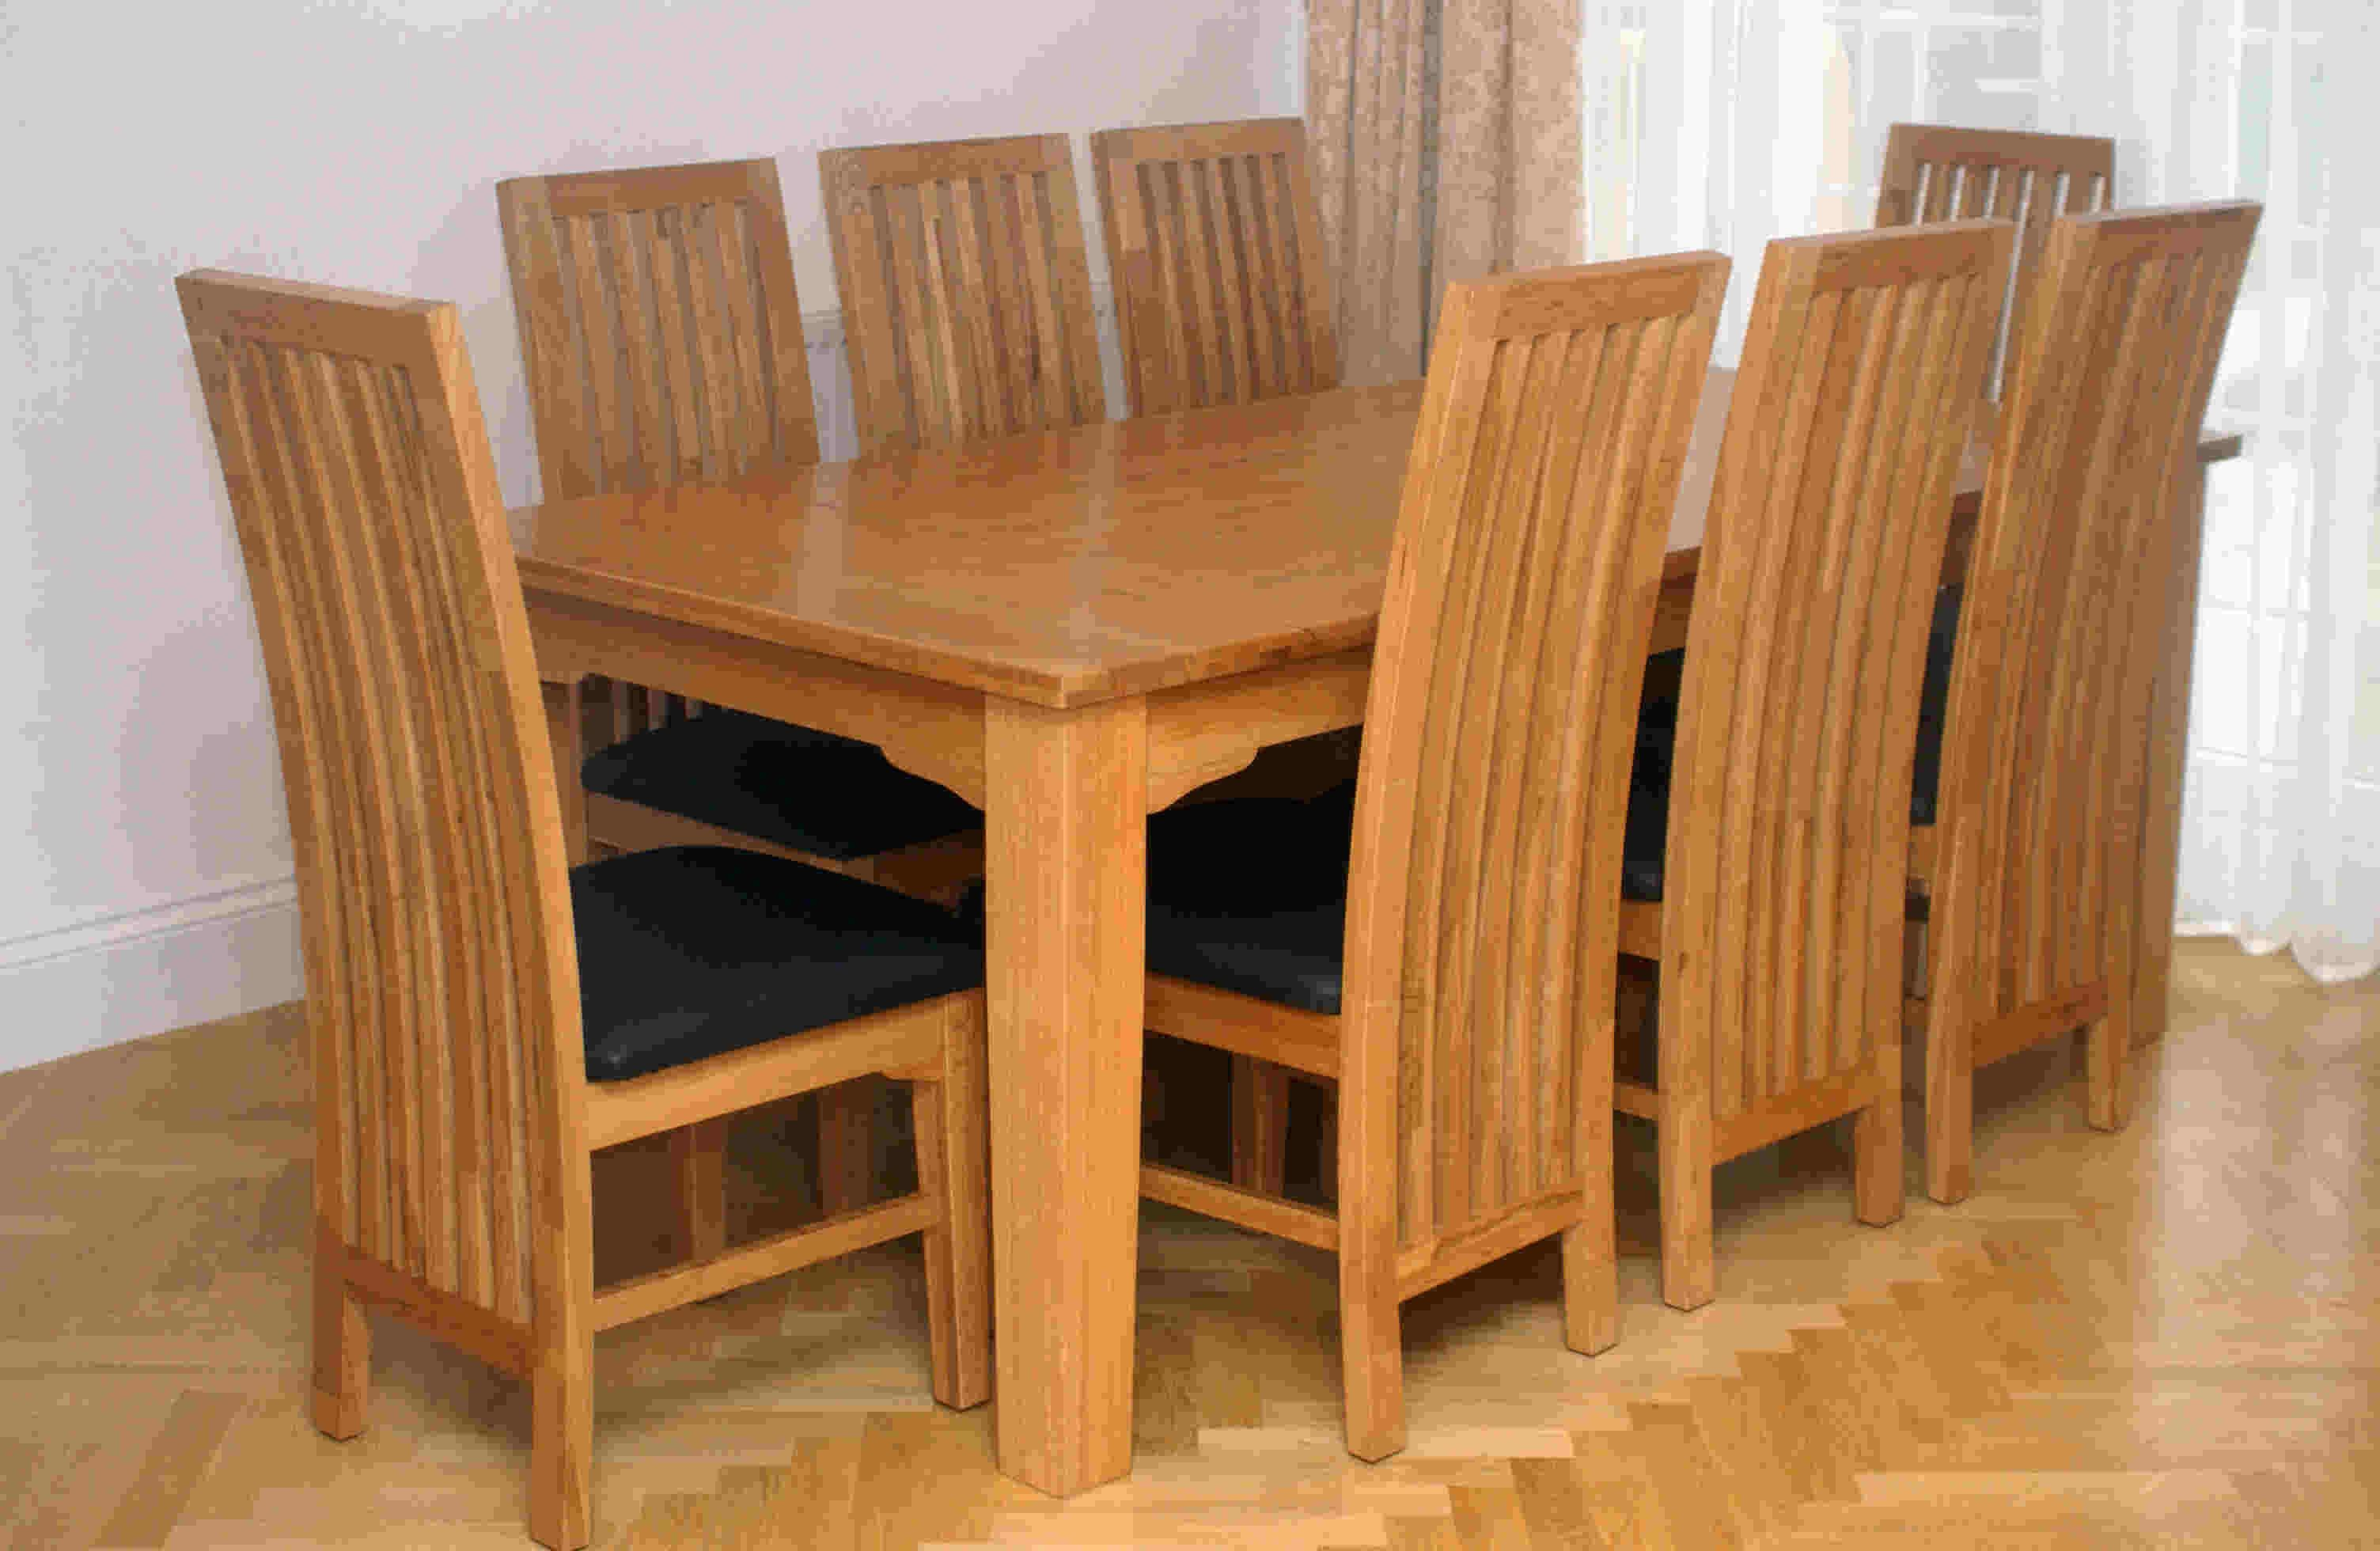 High Quality Oak Dining Room Furniture Sturdy Building May Take Years Of Wear And Tear,  And Getting Older Items May Be Easily Sanded As Well As Re Stained Or  Re Painted.